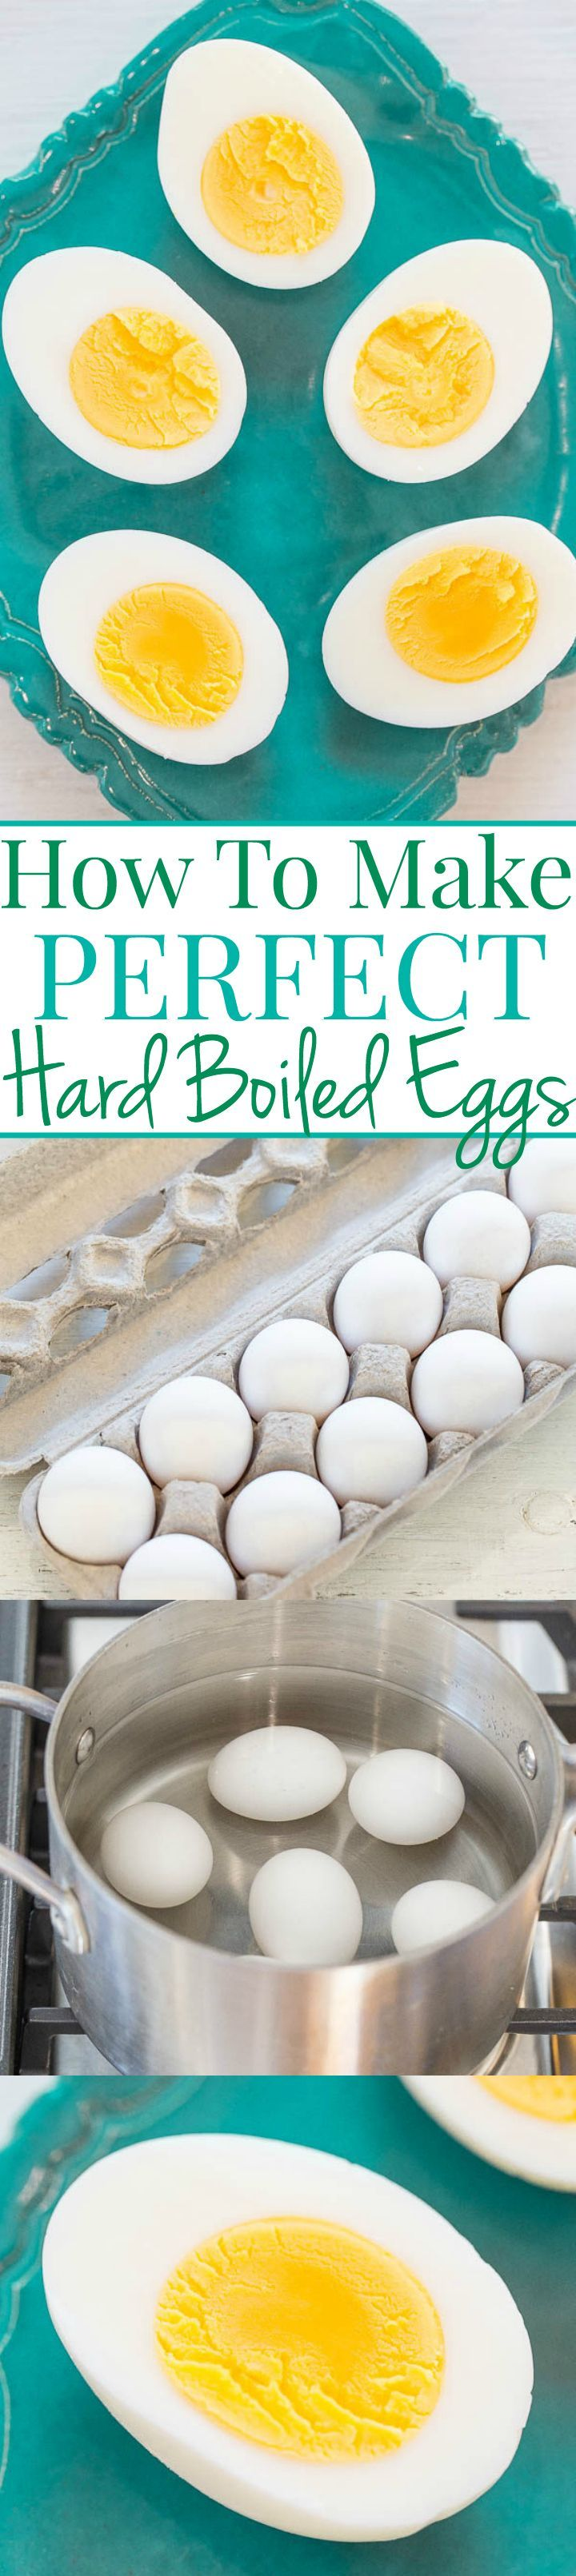 How To Make Perfect Hard Boiled Eggs  Learn The Secrets To Making Perfect  Hard Boiled